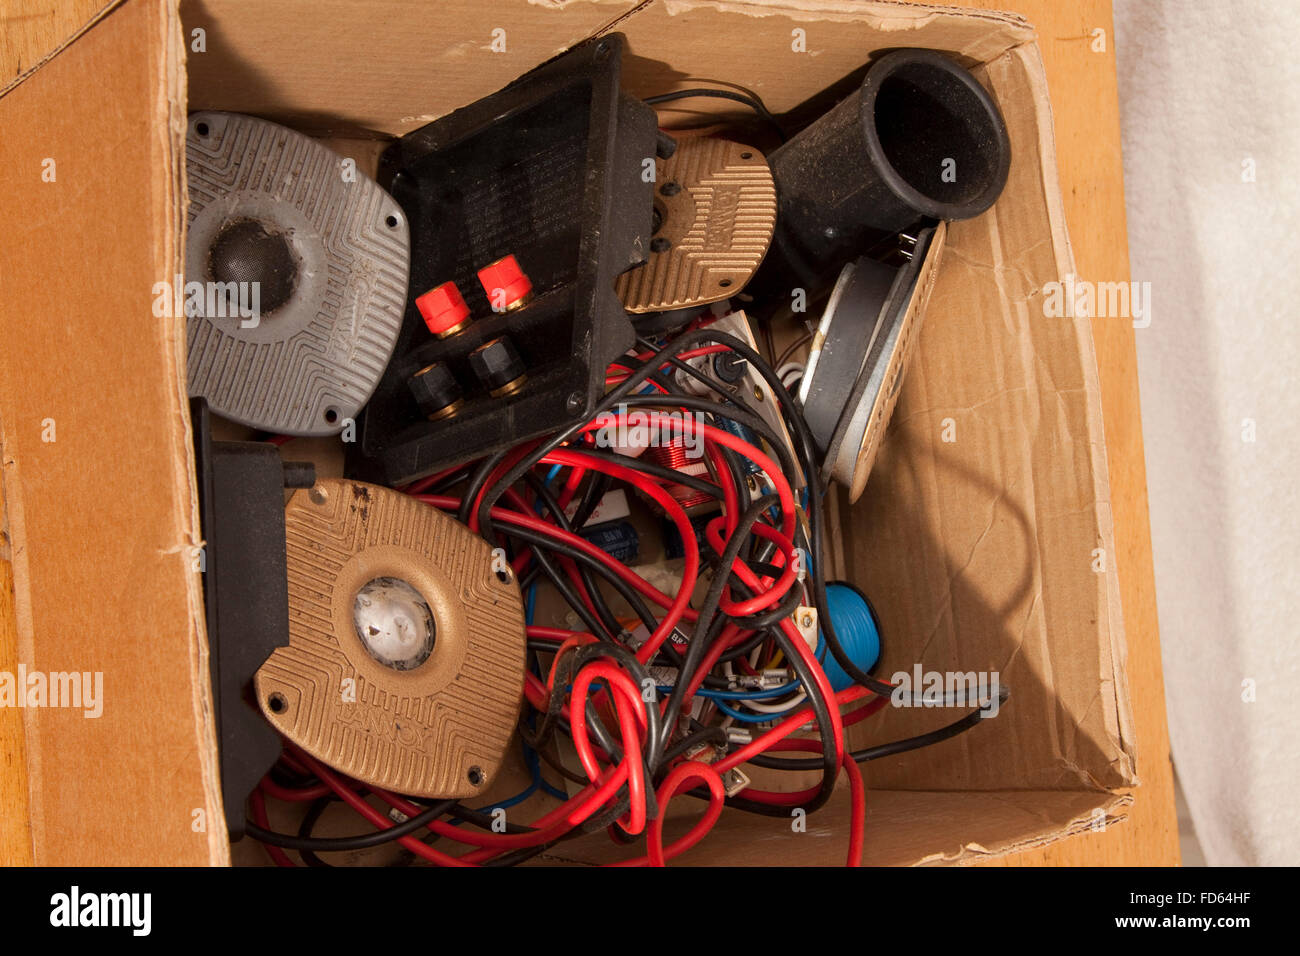 Speaker Crossovers Circuit Diagram Stock Vector Panels Photos Images Alamy A Cardboard Box Containing Poor Condition Tannoy Tweeters Terminal And Port